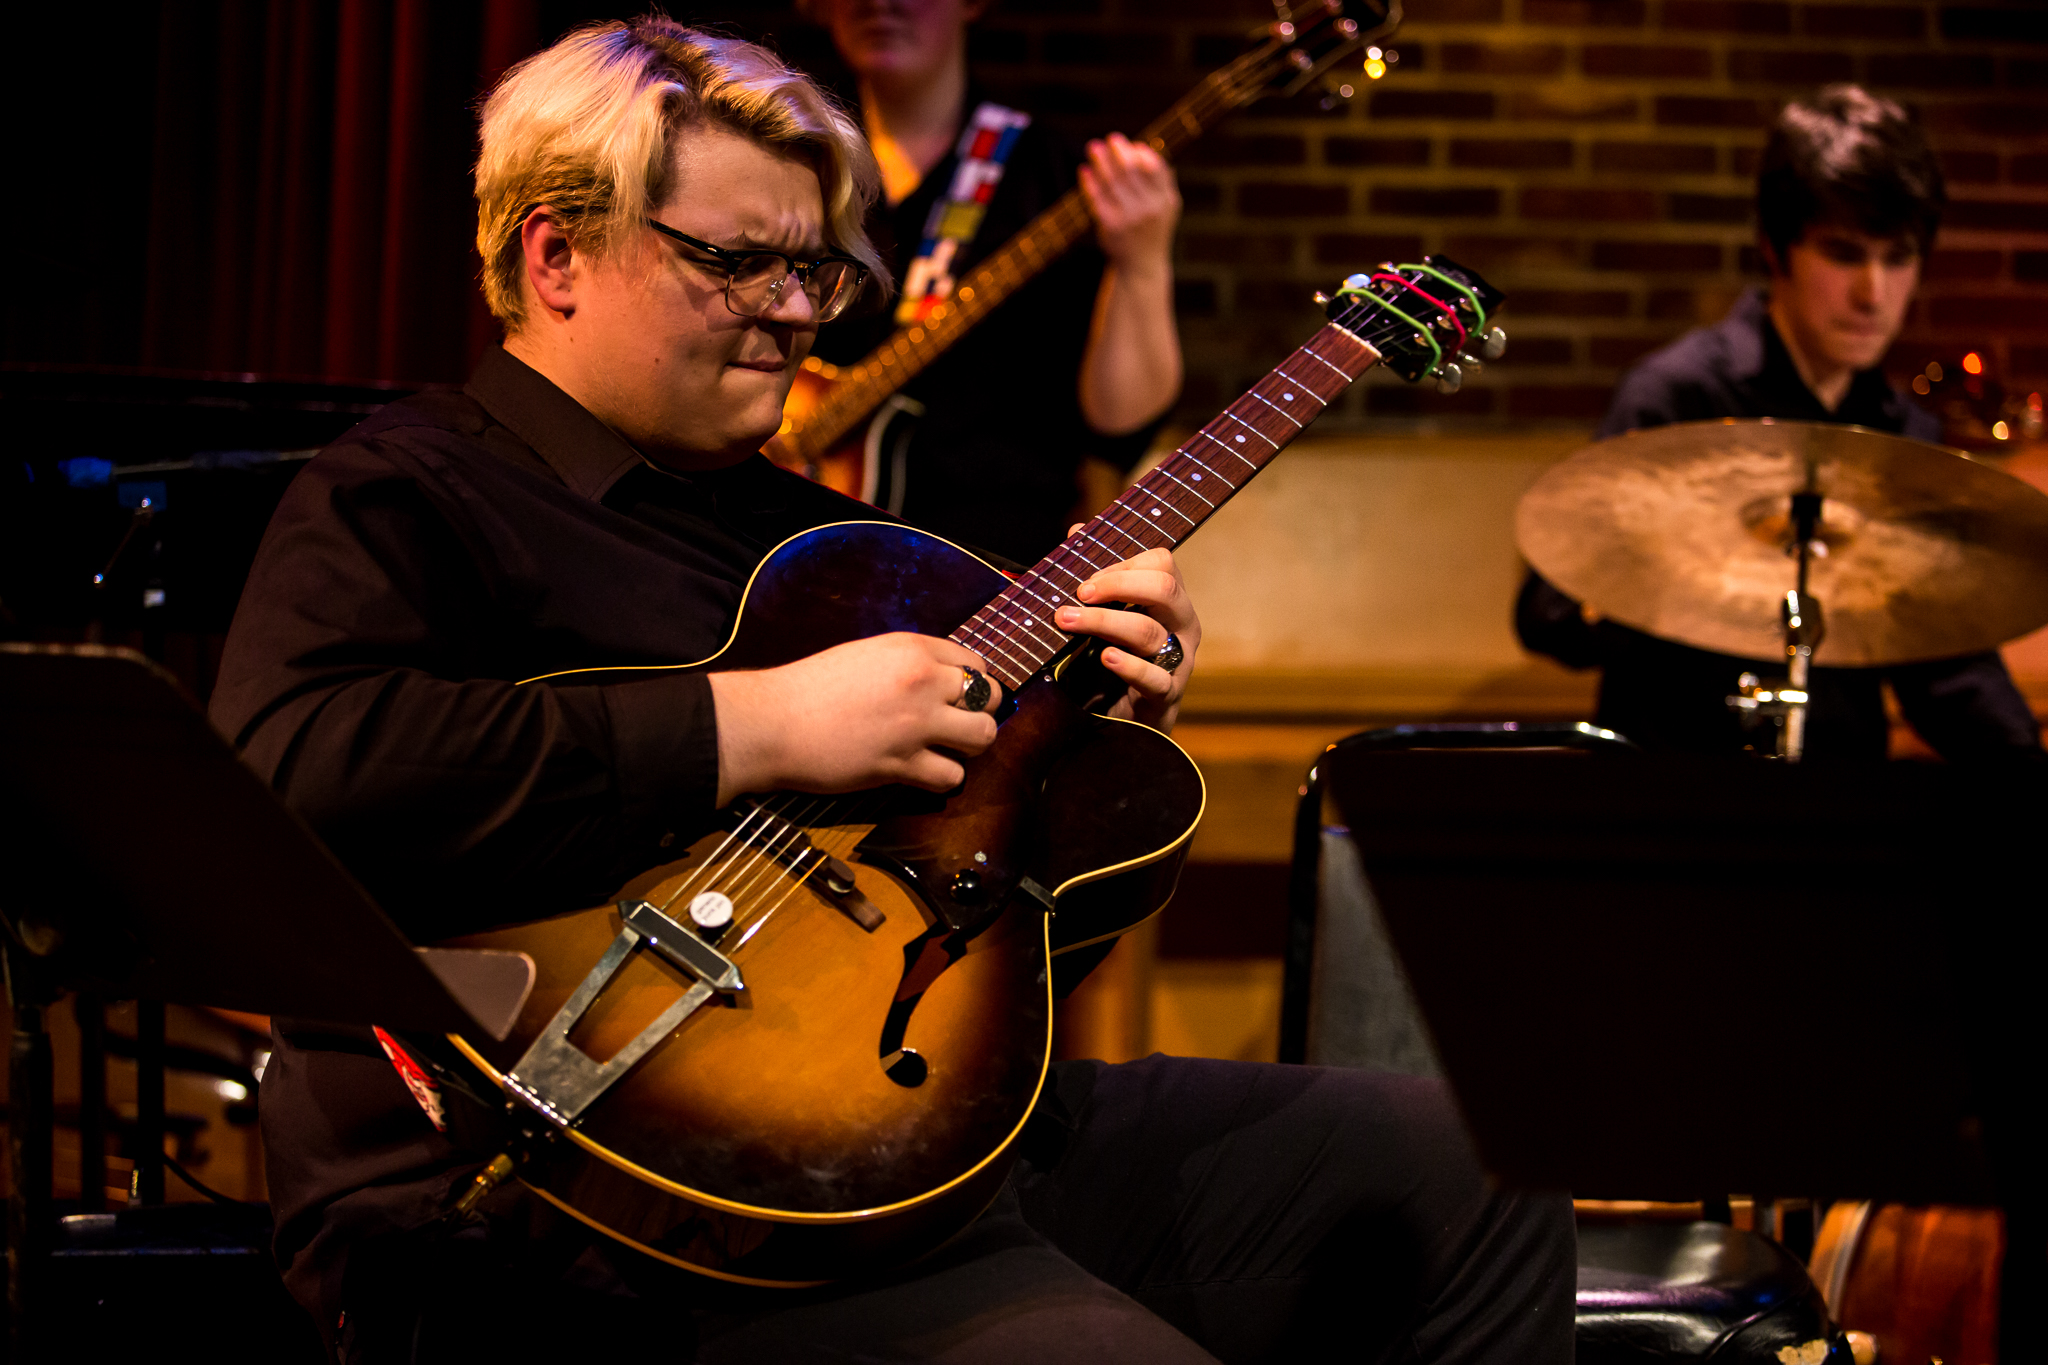 This rhythm section of guitar, bass, and drums works together to provide a solid groove on stage at the Union Cabaret and Grille in February 2019.